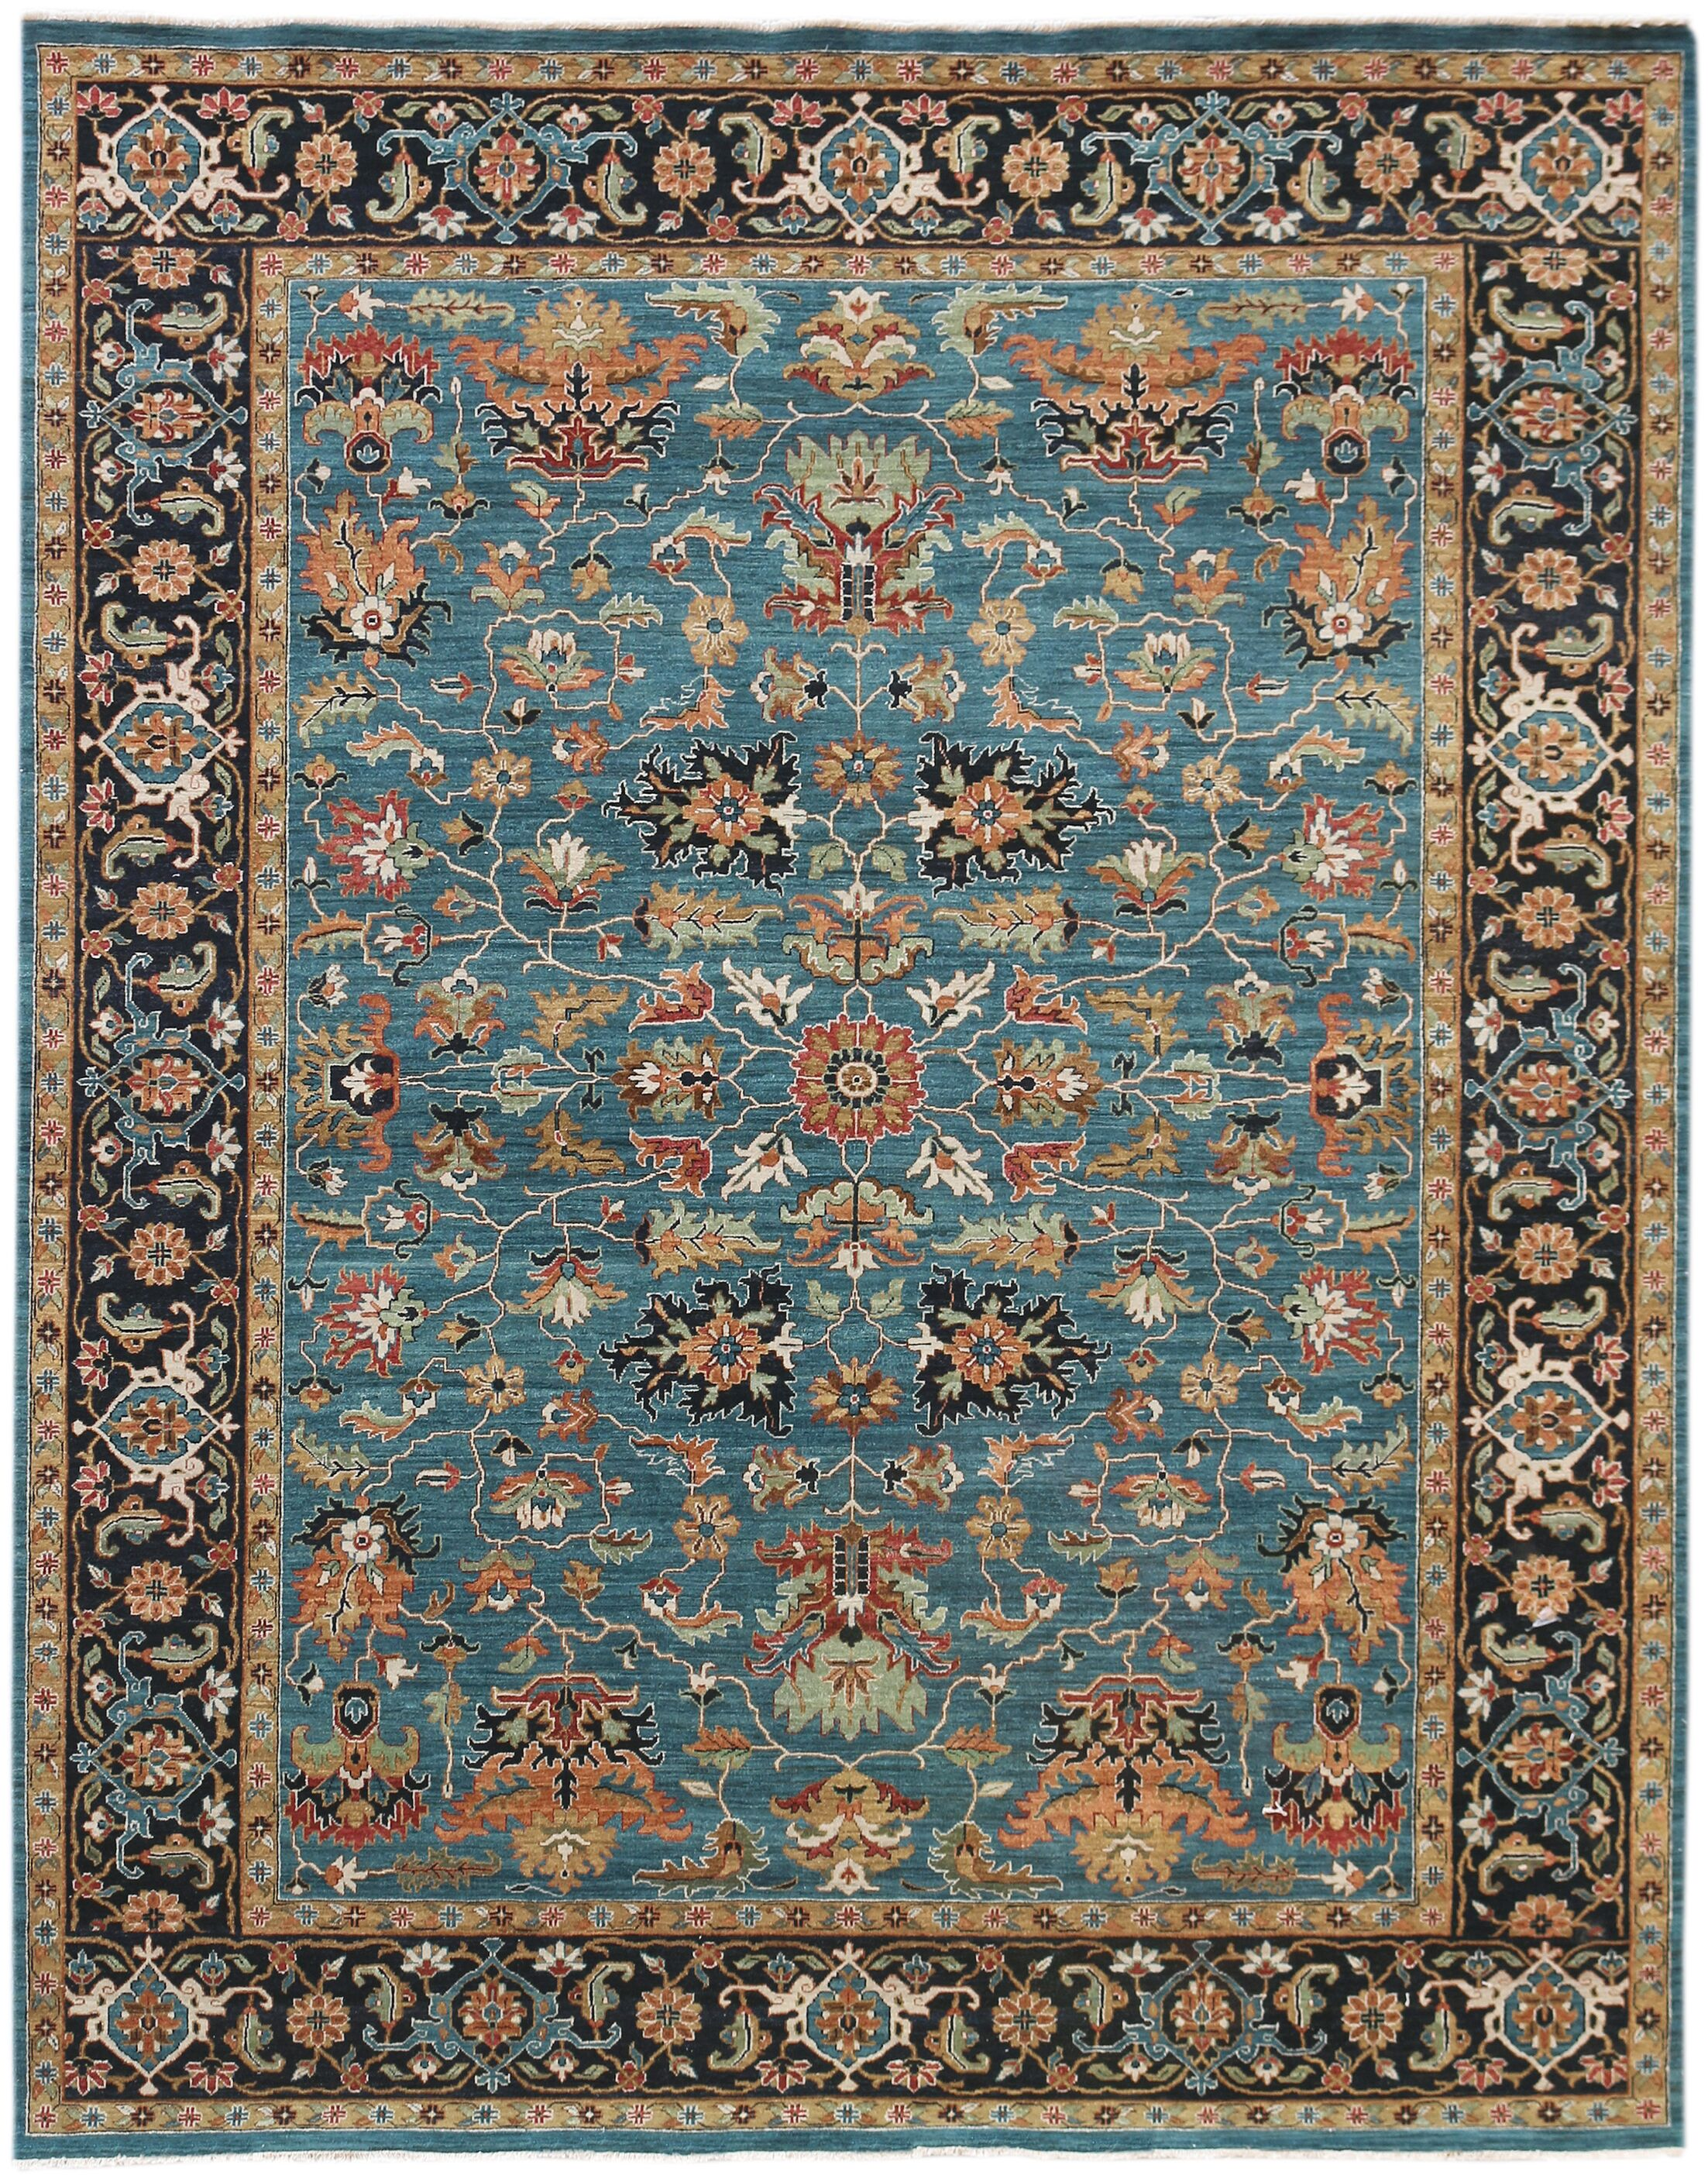 Lidiaídia Hand-Woven Wool Turquoise Area Rug Rug Size: Rectangle 2'6